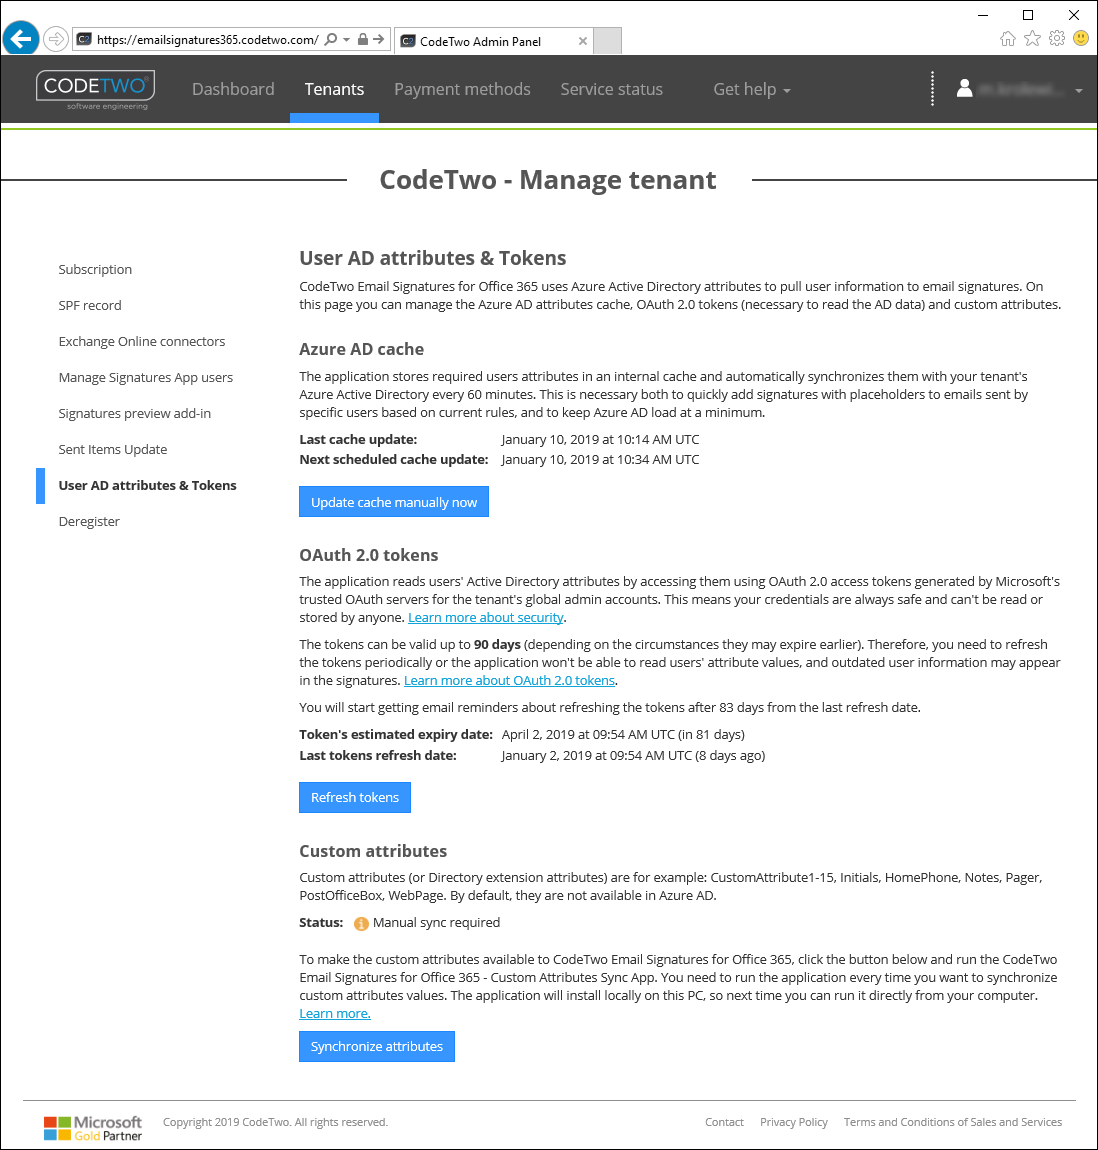 Tenant management - User AD attributes & Tokens | CodeTwo